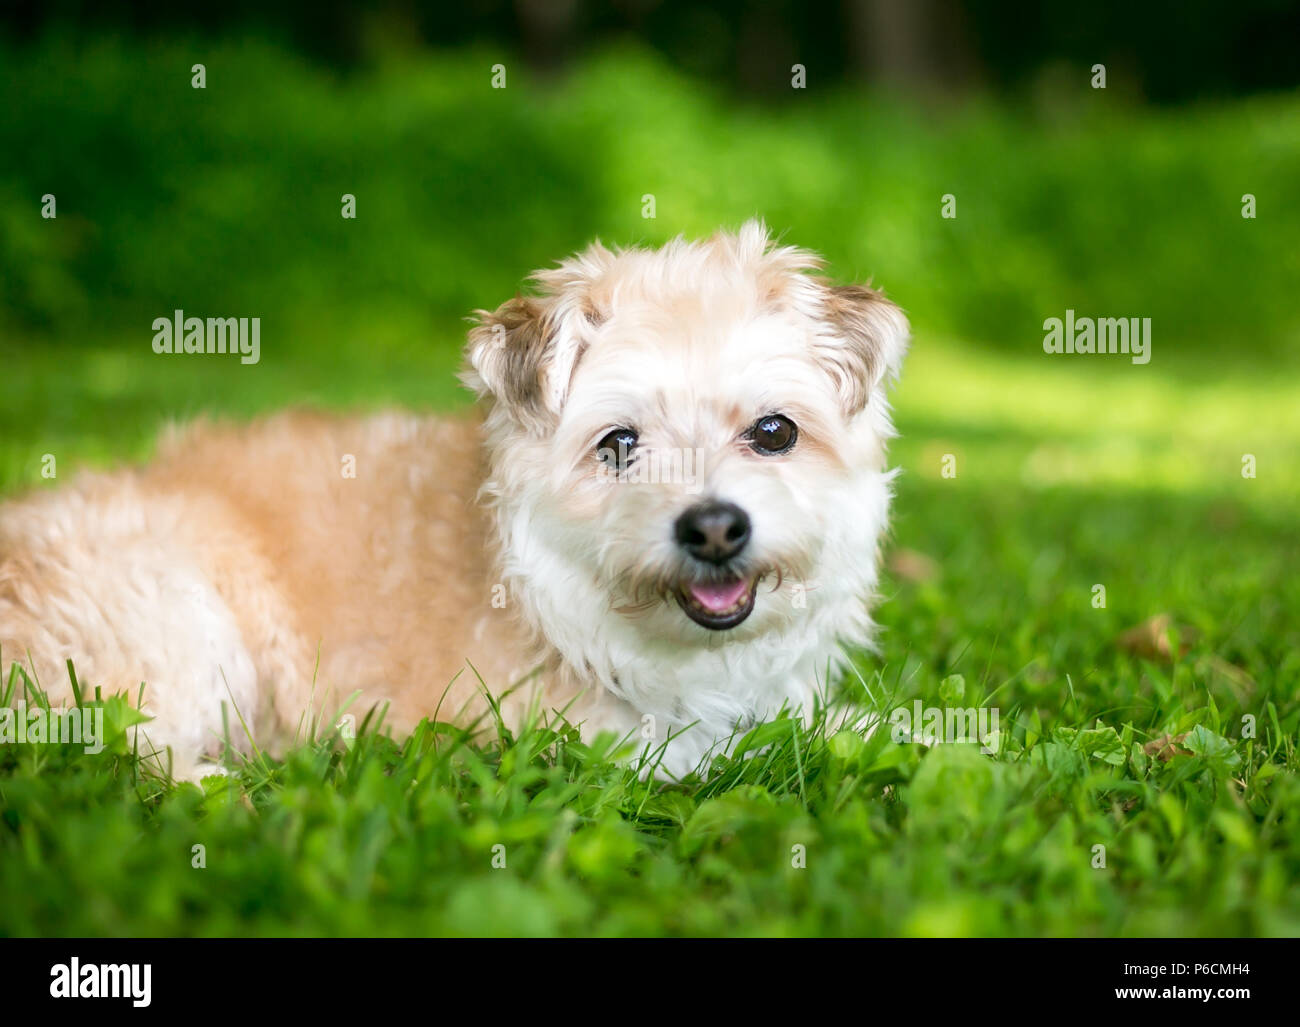 A cute Miniature Poodle / Pomeranian mixed breed dog lying in the grass - Stock Image